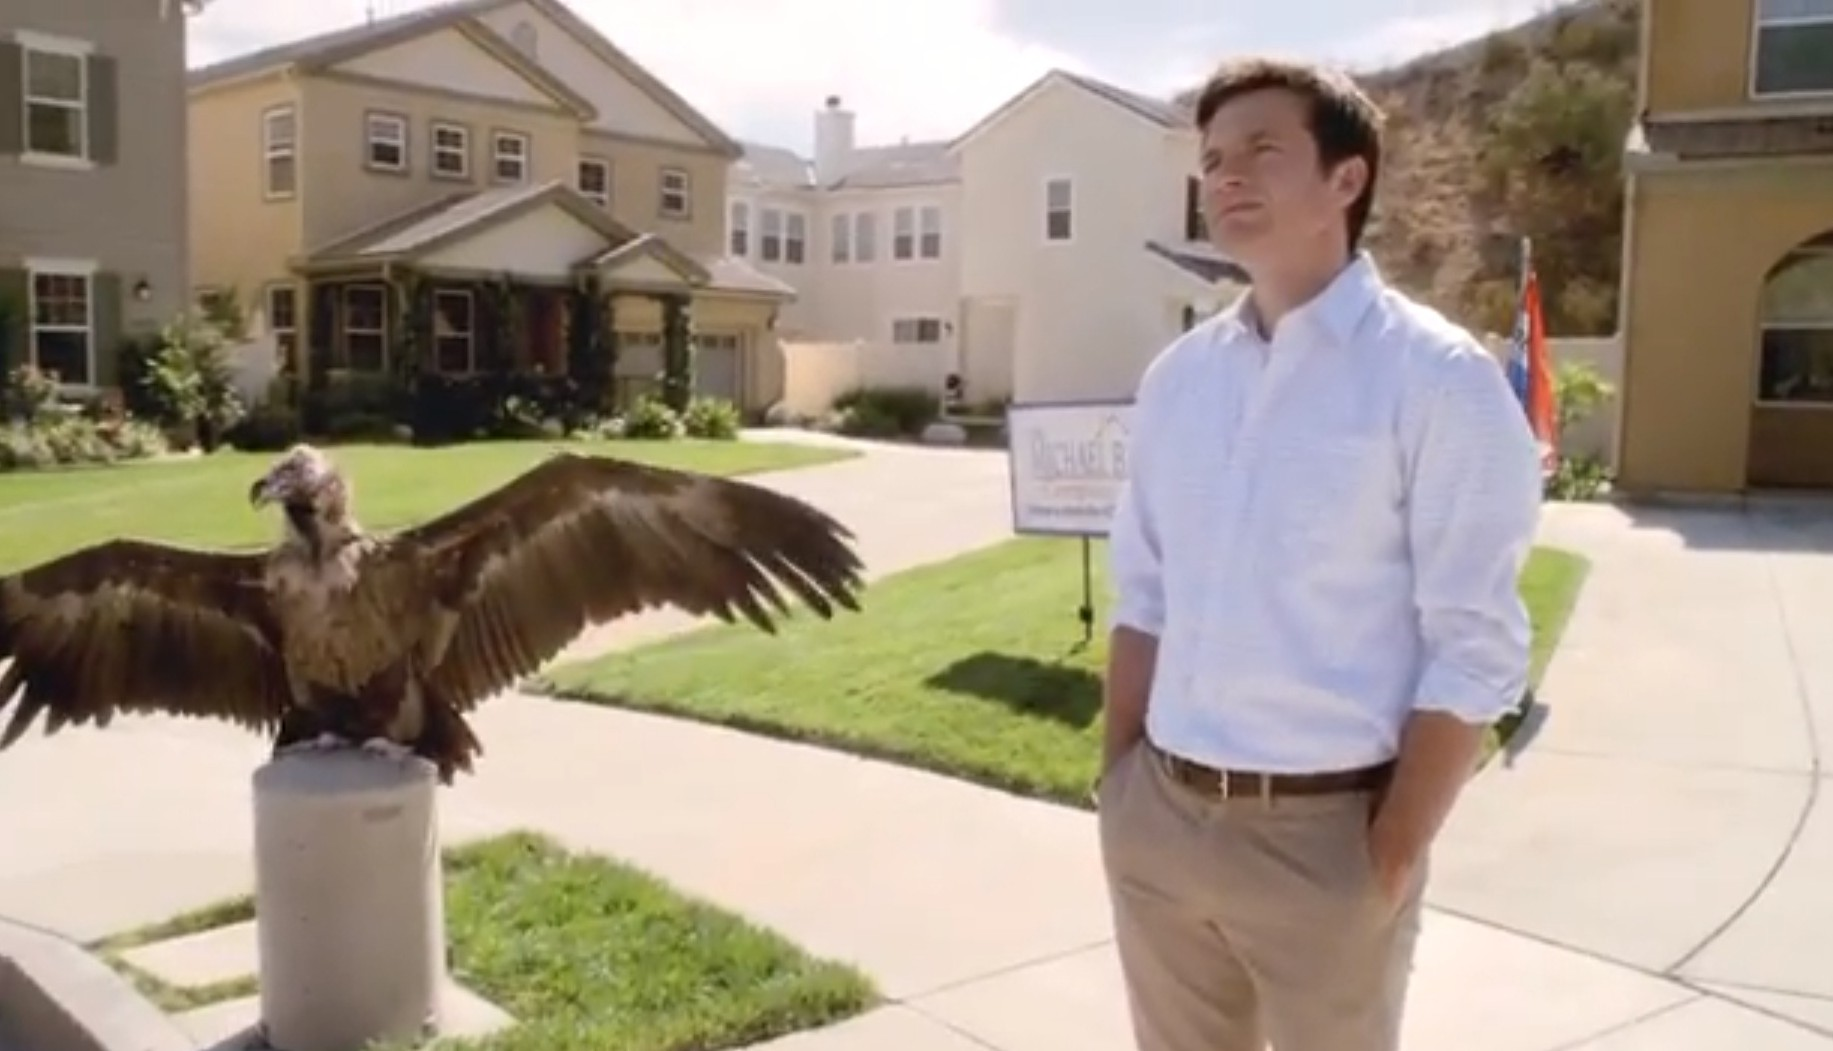 Arrested Development season 4 trailer shows an ostrich running riot